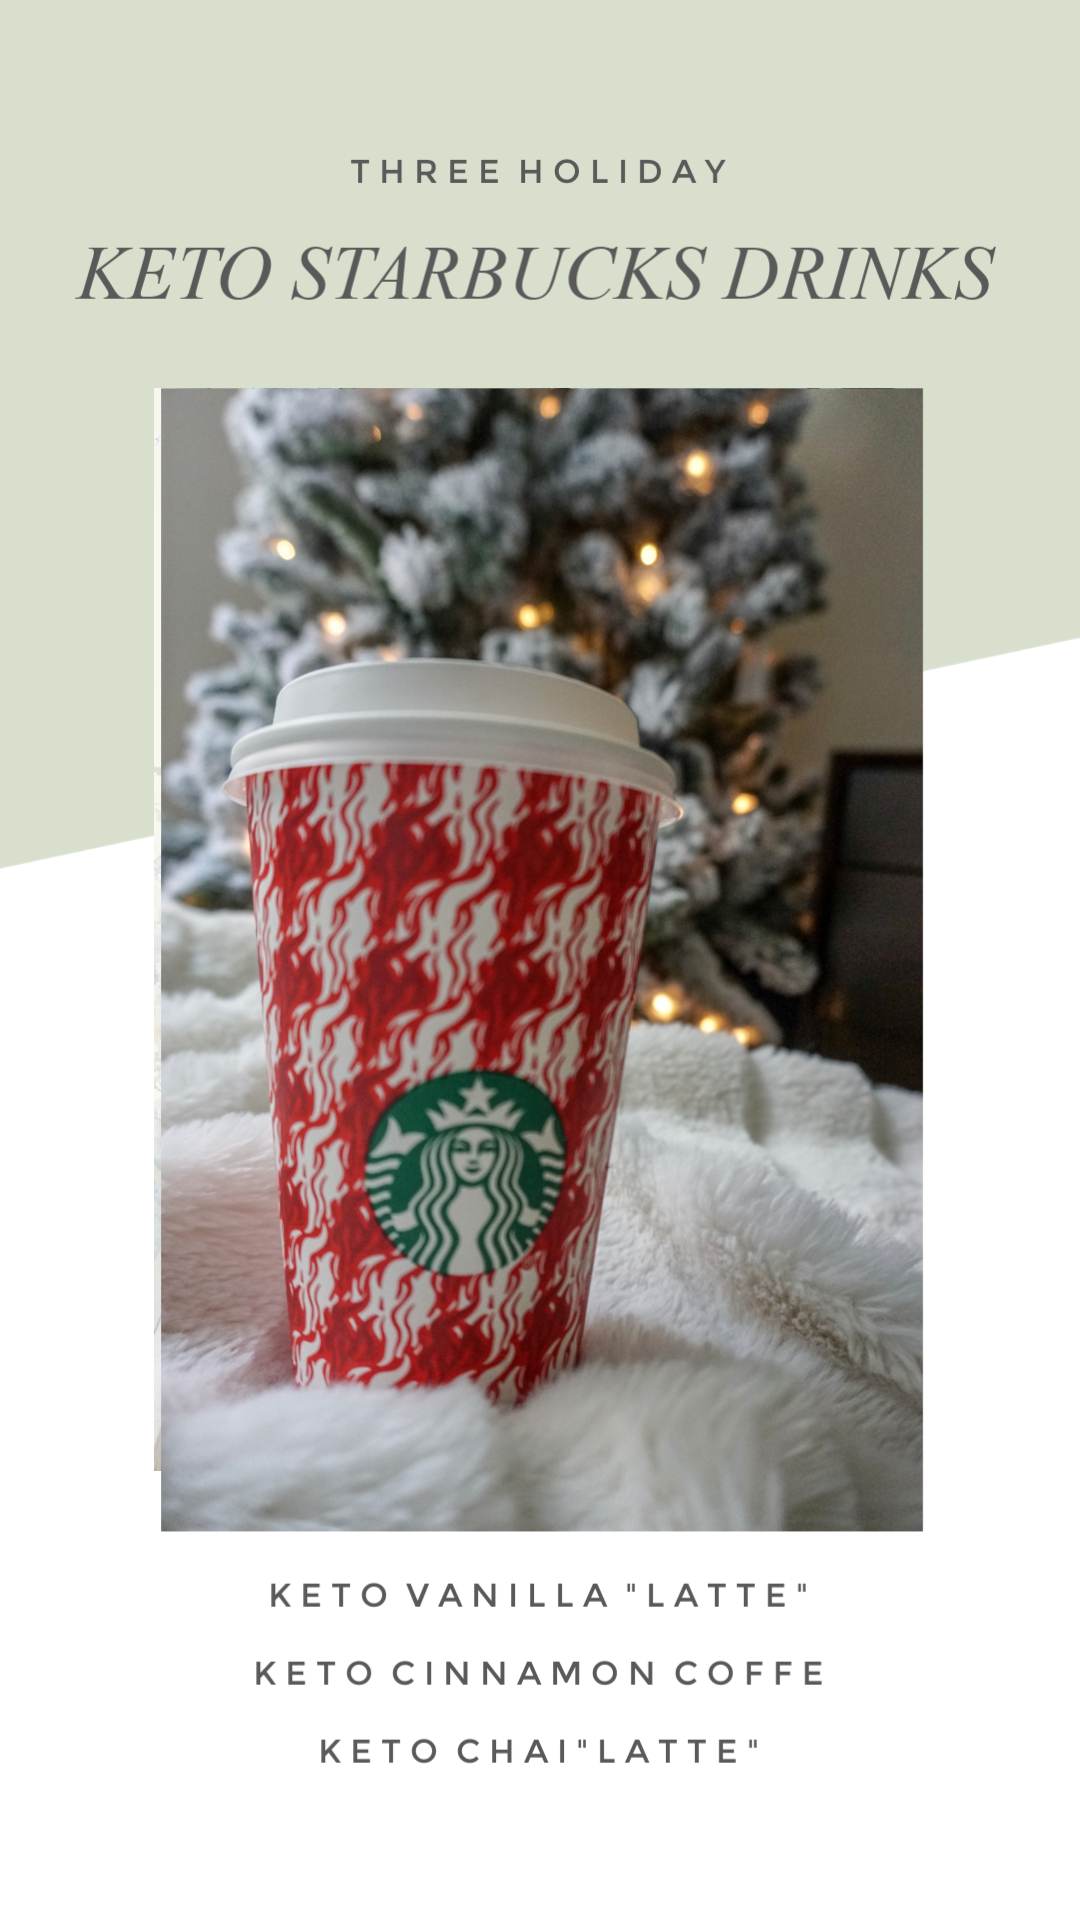 Three Holiday Keto Starbucks Drinks and How to Order Them